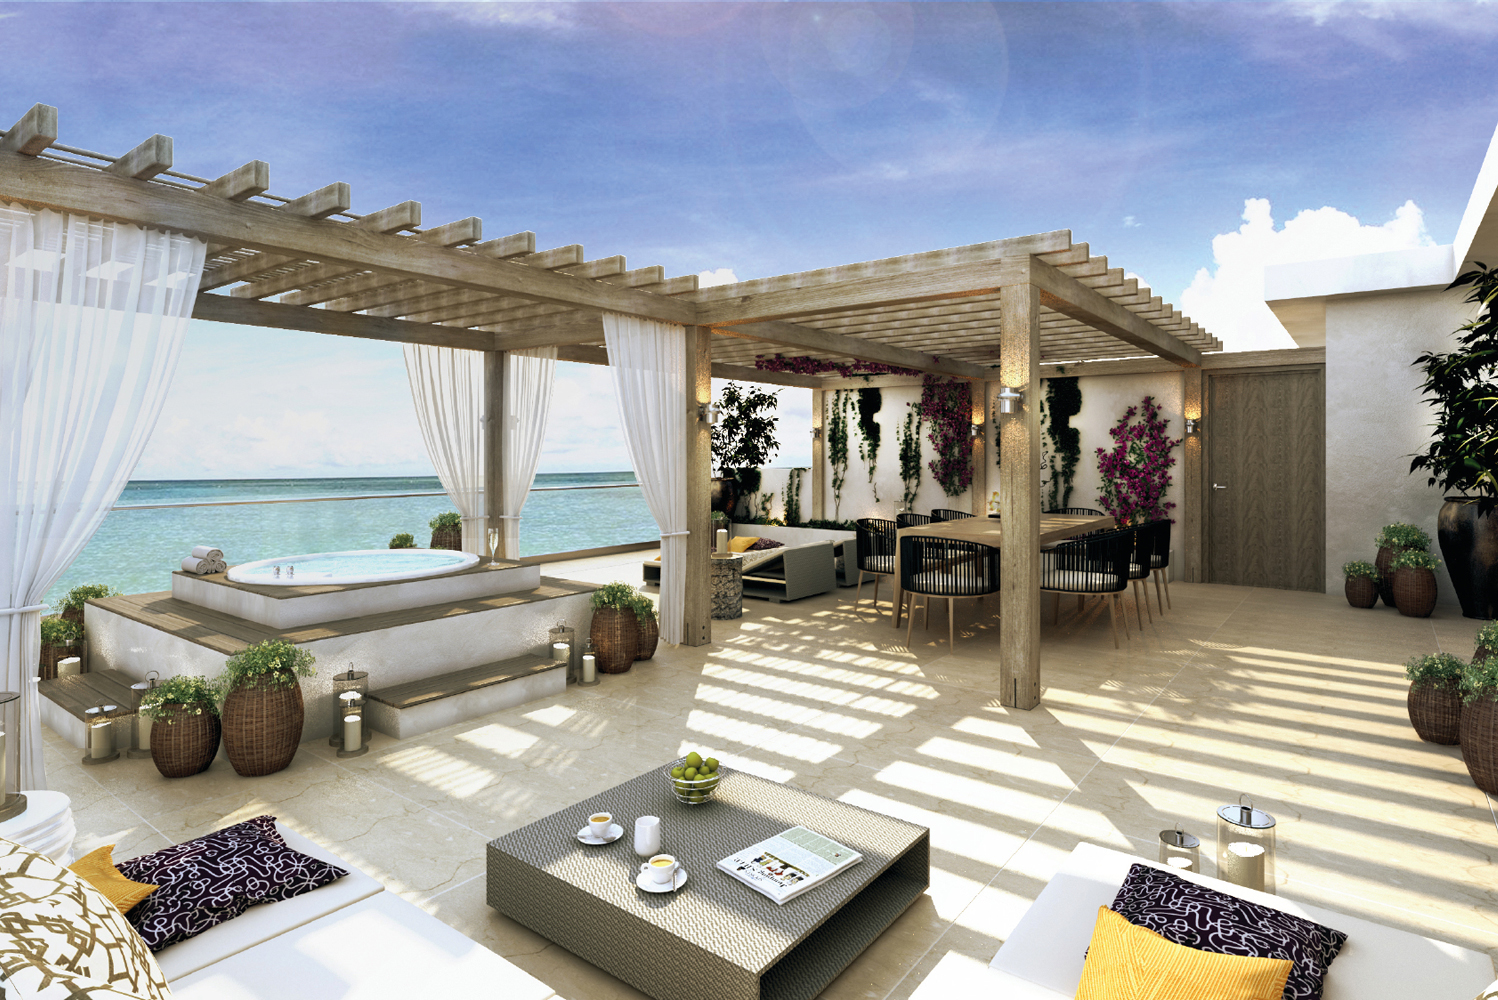 According to Roberto Elias, in designing the property, the goal was to have the ocean take center stage.